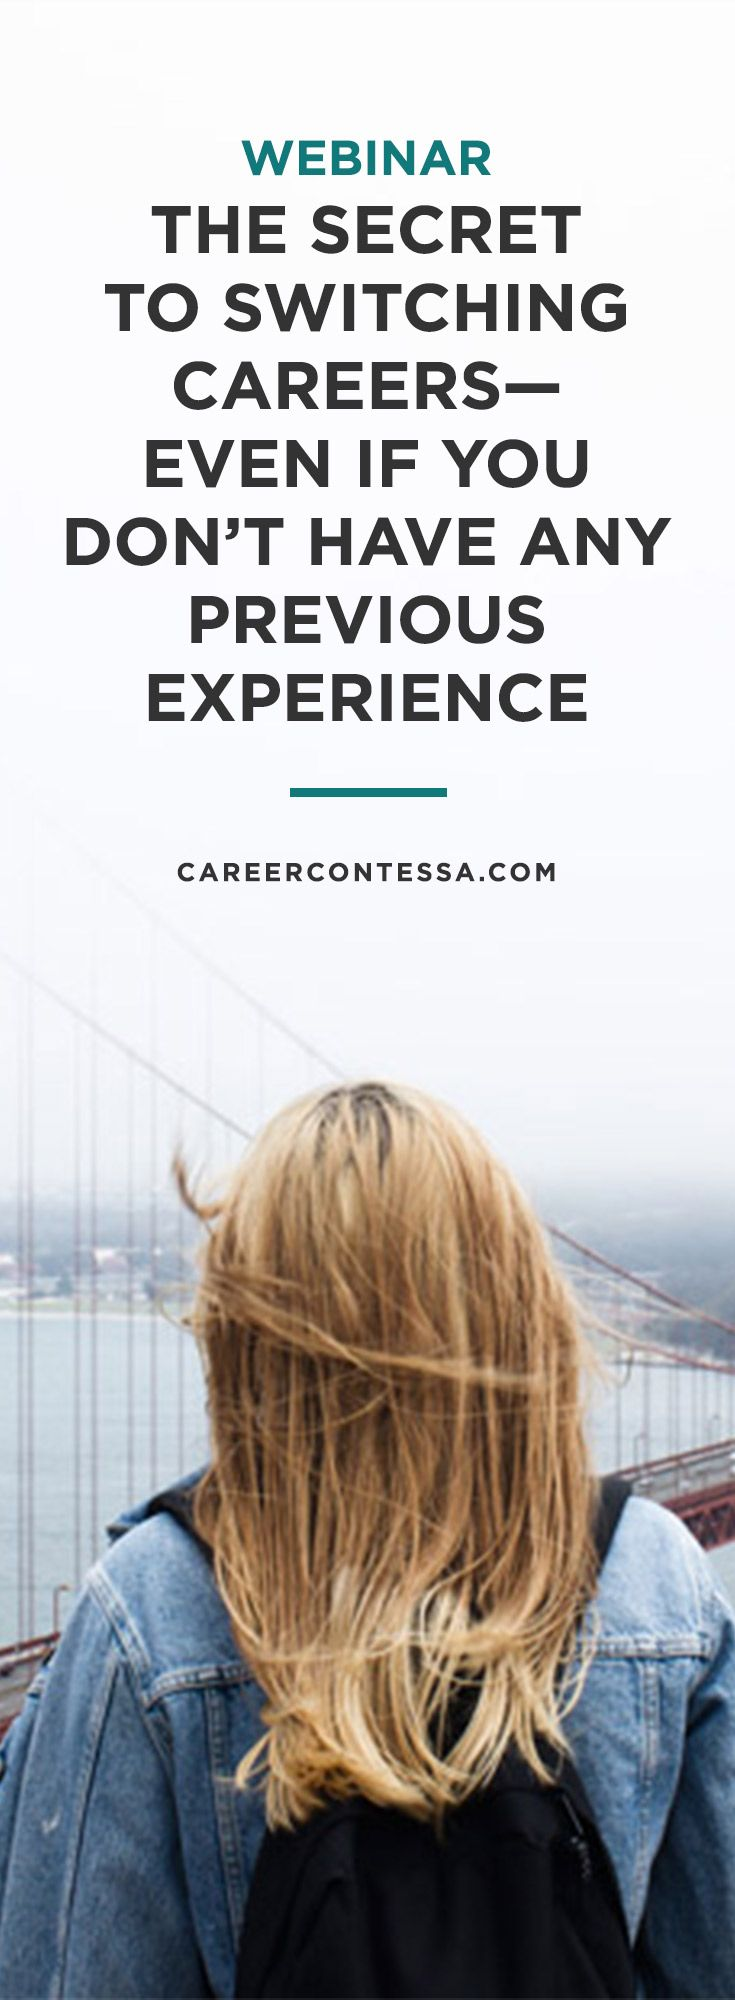 best ideas about new career career ideas resume 17 best ideas about new career career ideas resume skills and career goals